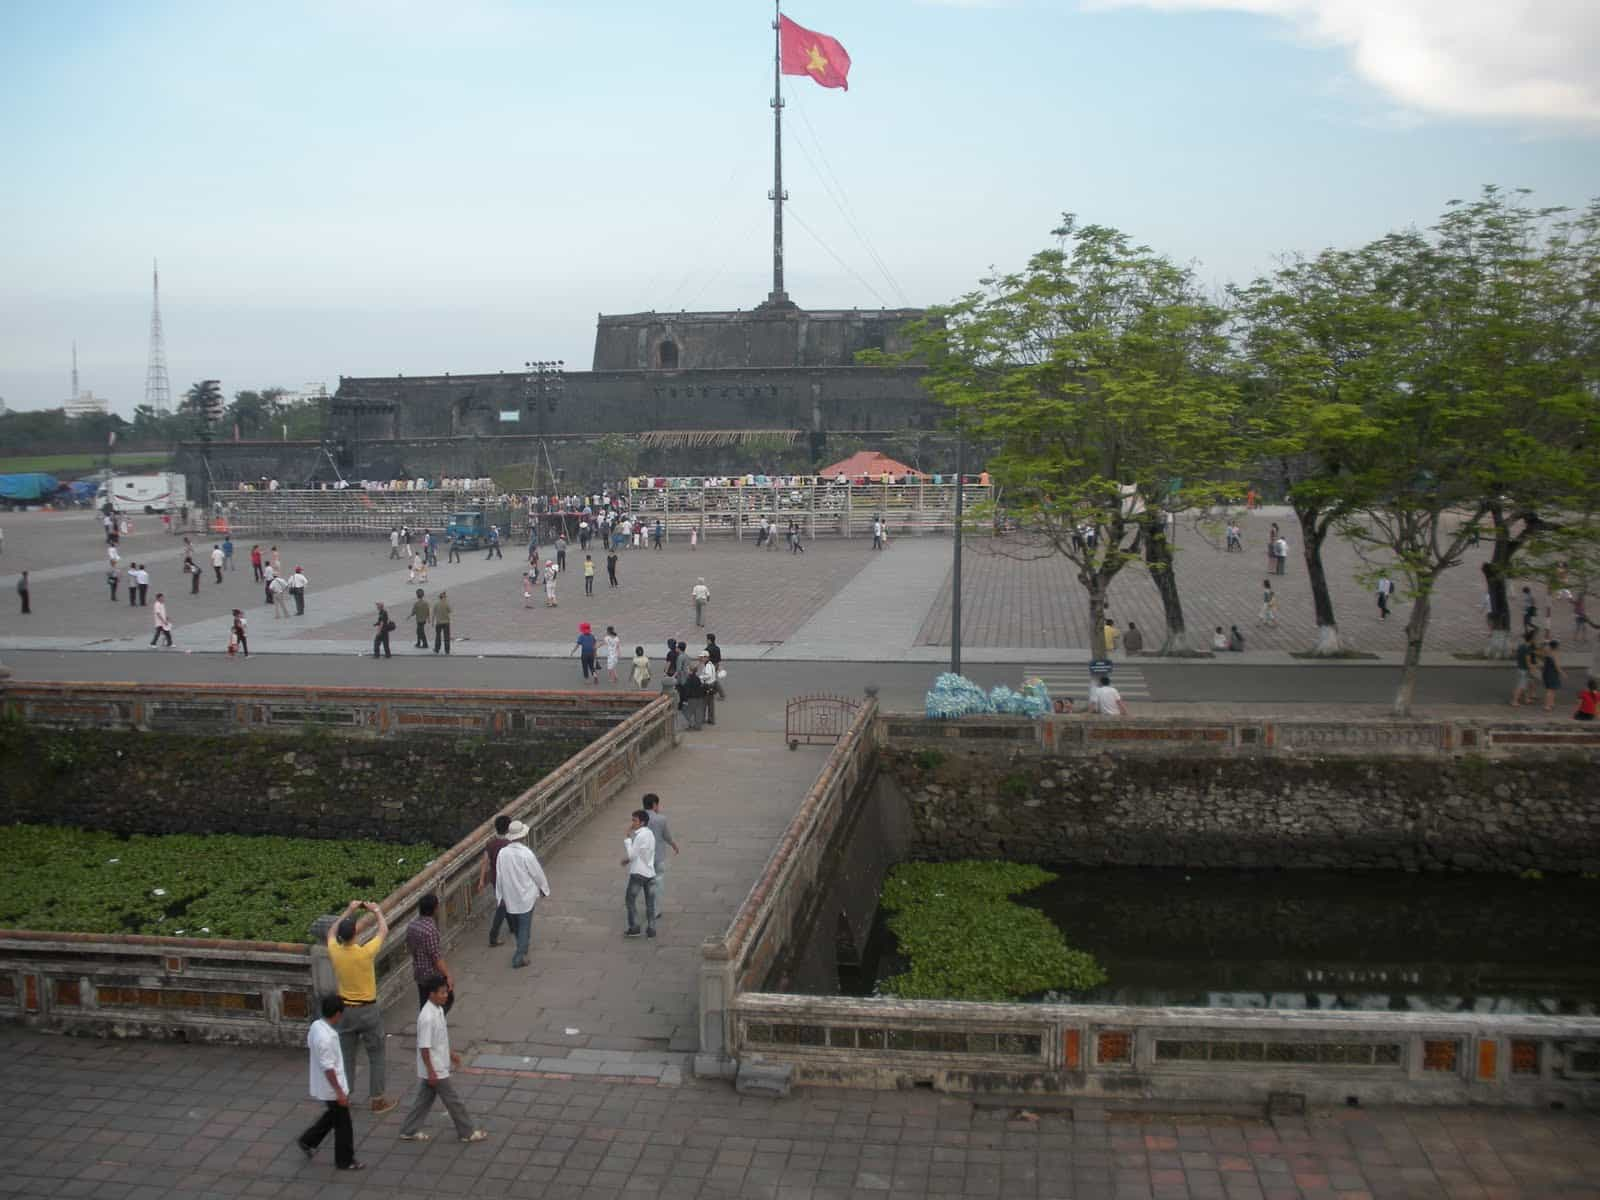 The Central city of Hue Vietnam